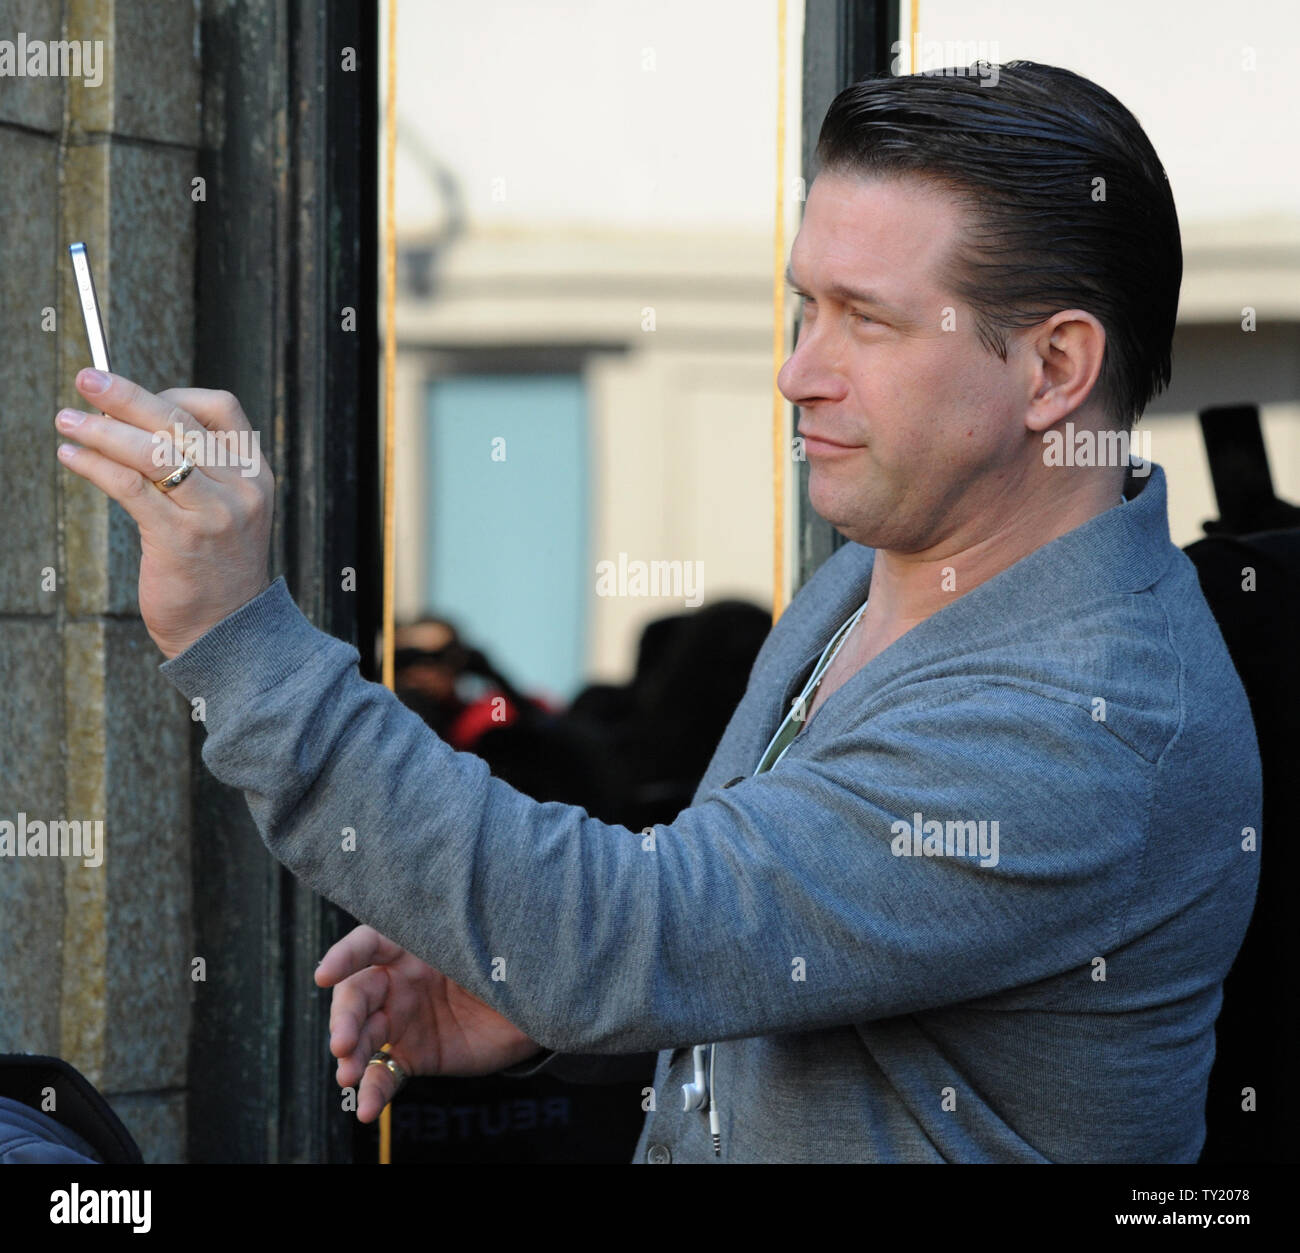 Actor Stephen Baldwin records the moment during an unveiling ceremony honoring his brother Alec Baldwin with the 2,433rd star on the Hollywood Walk of Fame in Los Angeles on February 14, 2011.  UPI/Jim Ruymen Stock Photo